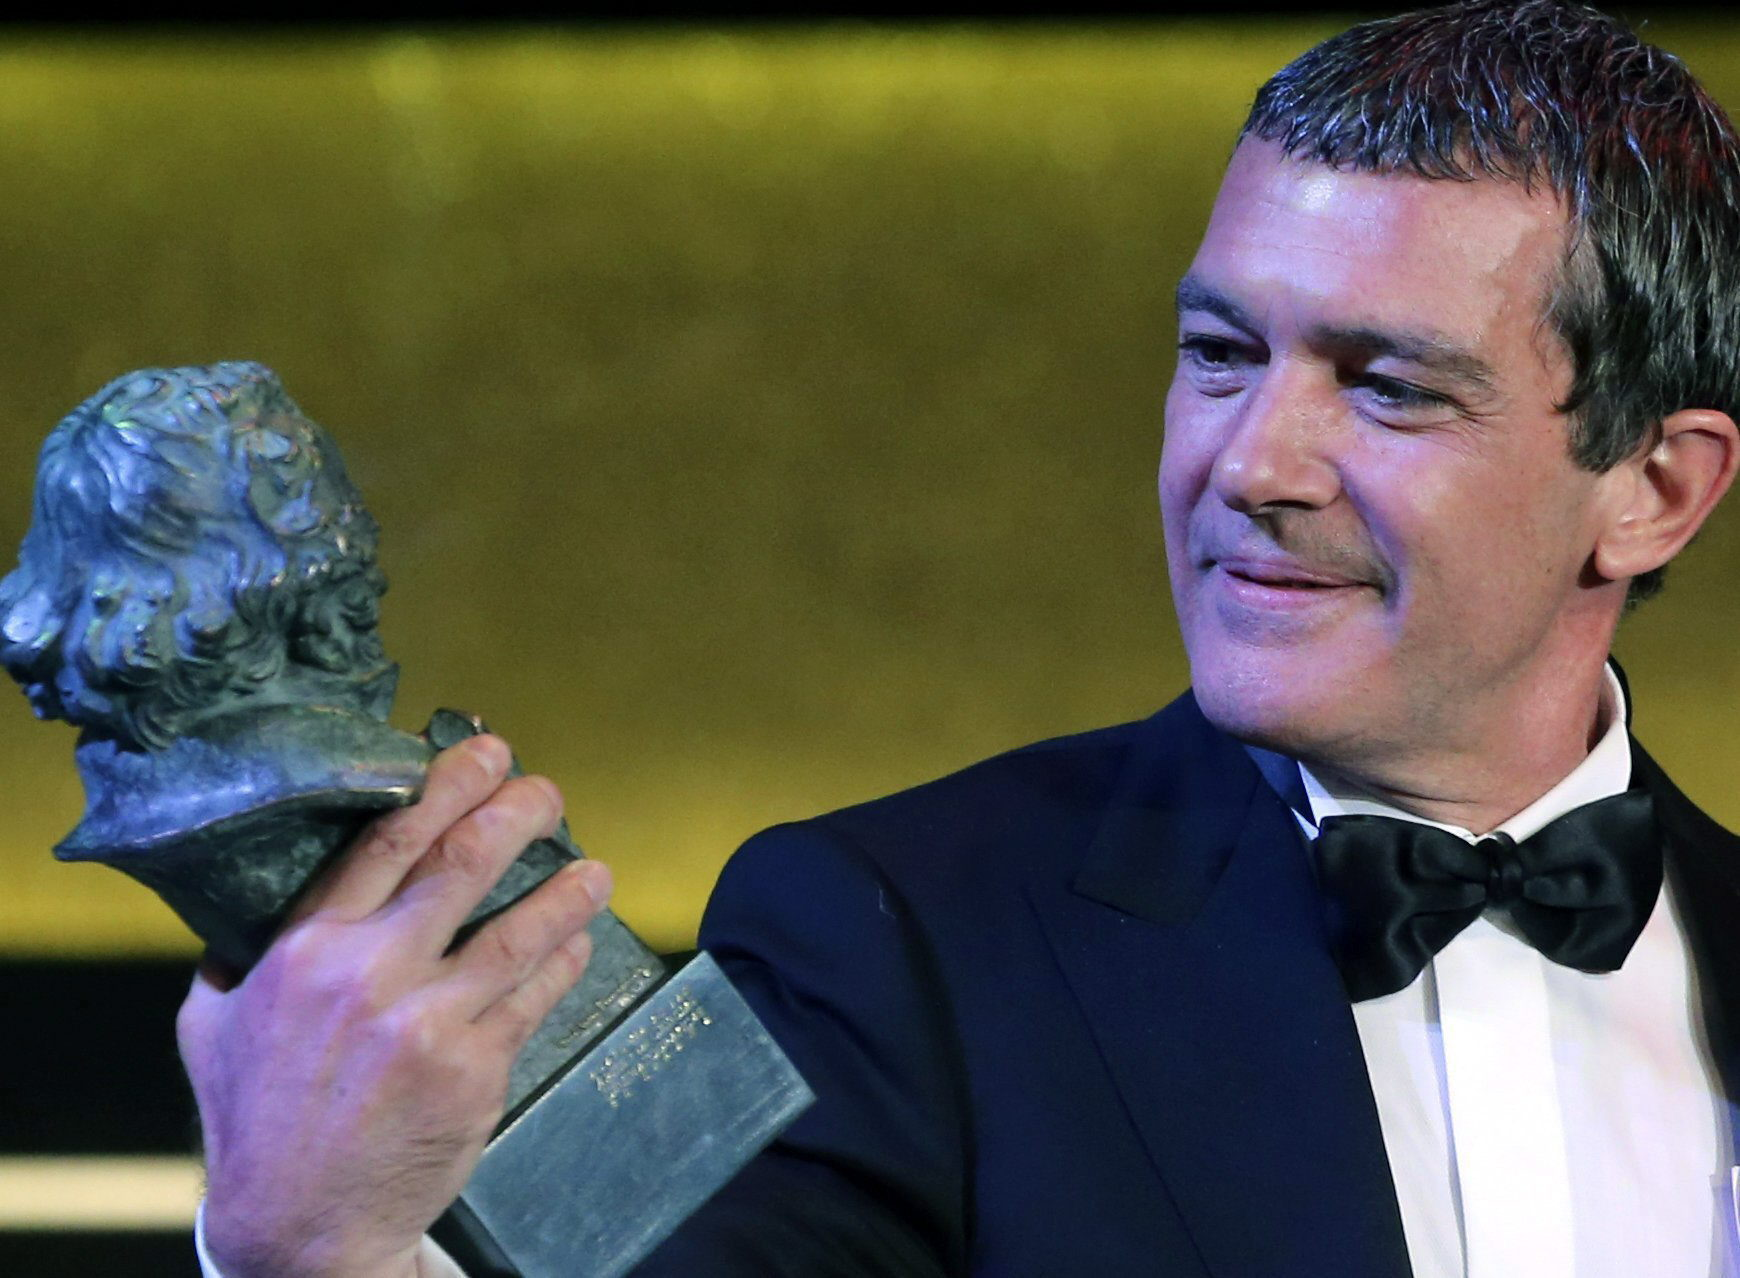 ESPAÑA PREMIOS GOYA:EFEMEX27. MADRID, 07/02/2015.- El actor Antonio Banderas recibe el Goya de Honor durante la gala de entrega de los premios Goya 2015, que se celebra esta noche en el centro de congresos Príncipe Felipe, en Madrid. EFE/Ballesteros  SPAIN CINEMA:Spanish actor Antonio Banderas receives the Goya Award for all his career during the gala of the Goya Awards (the Spanish Royal Cinema Academy Prize) gala held in Felipe VI Congress center of Madrid, Spain on 7 February 2015. EFE/Ballesteros